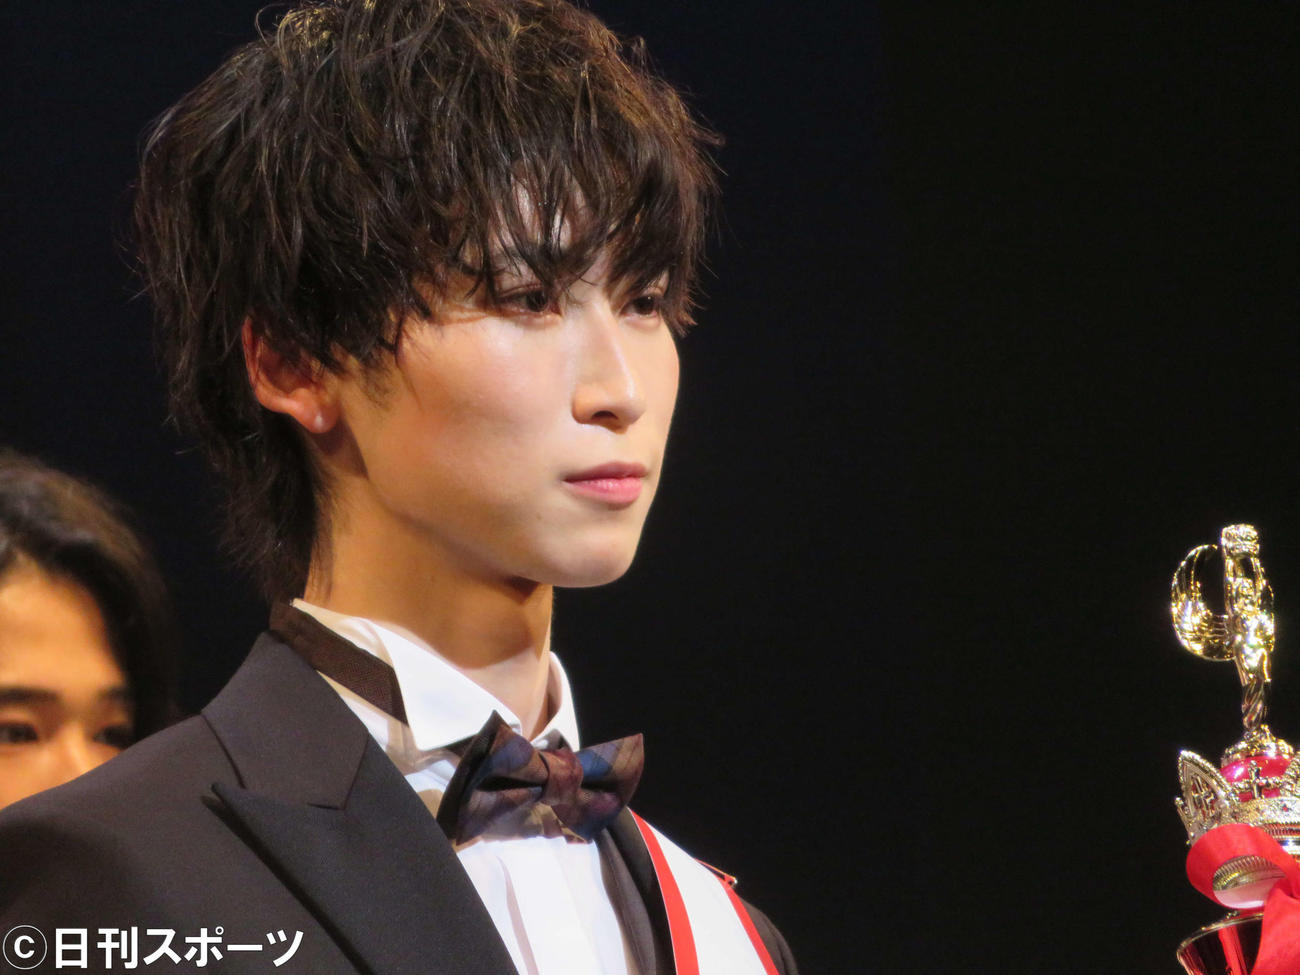 「MR OF MR CAMPUS CONTEST 2021 supported by メンズリゼ」でグランプリを受賞した鈴木廉さん(撮影・三須佳夏)